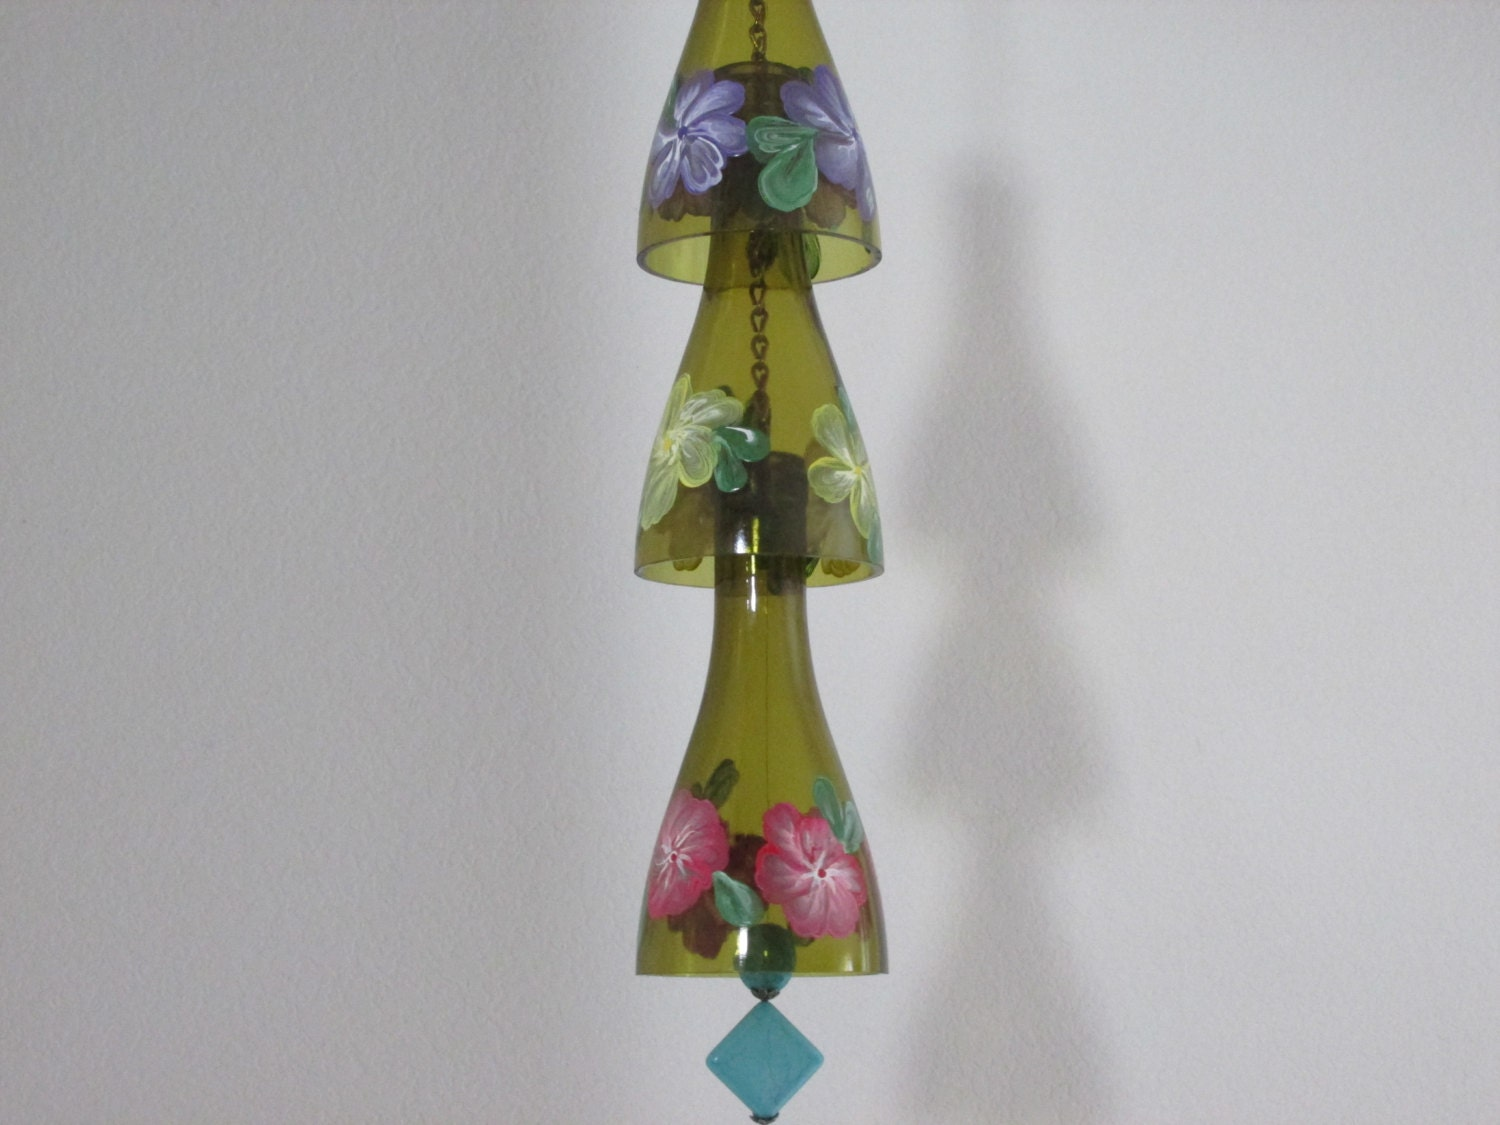 glass wind chime upcycled wine bottle wind chime flowers